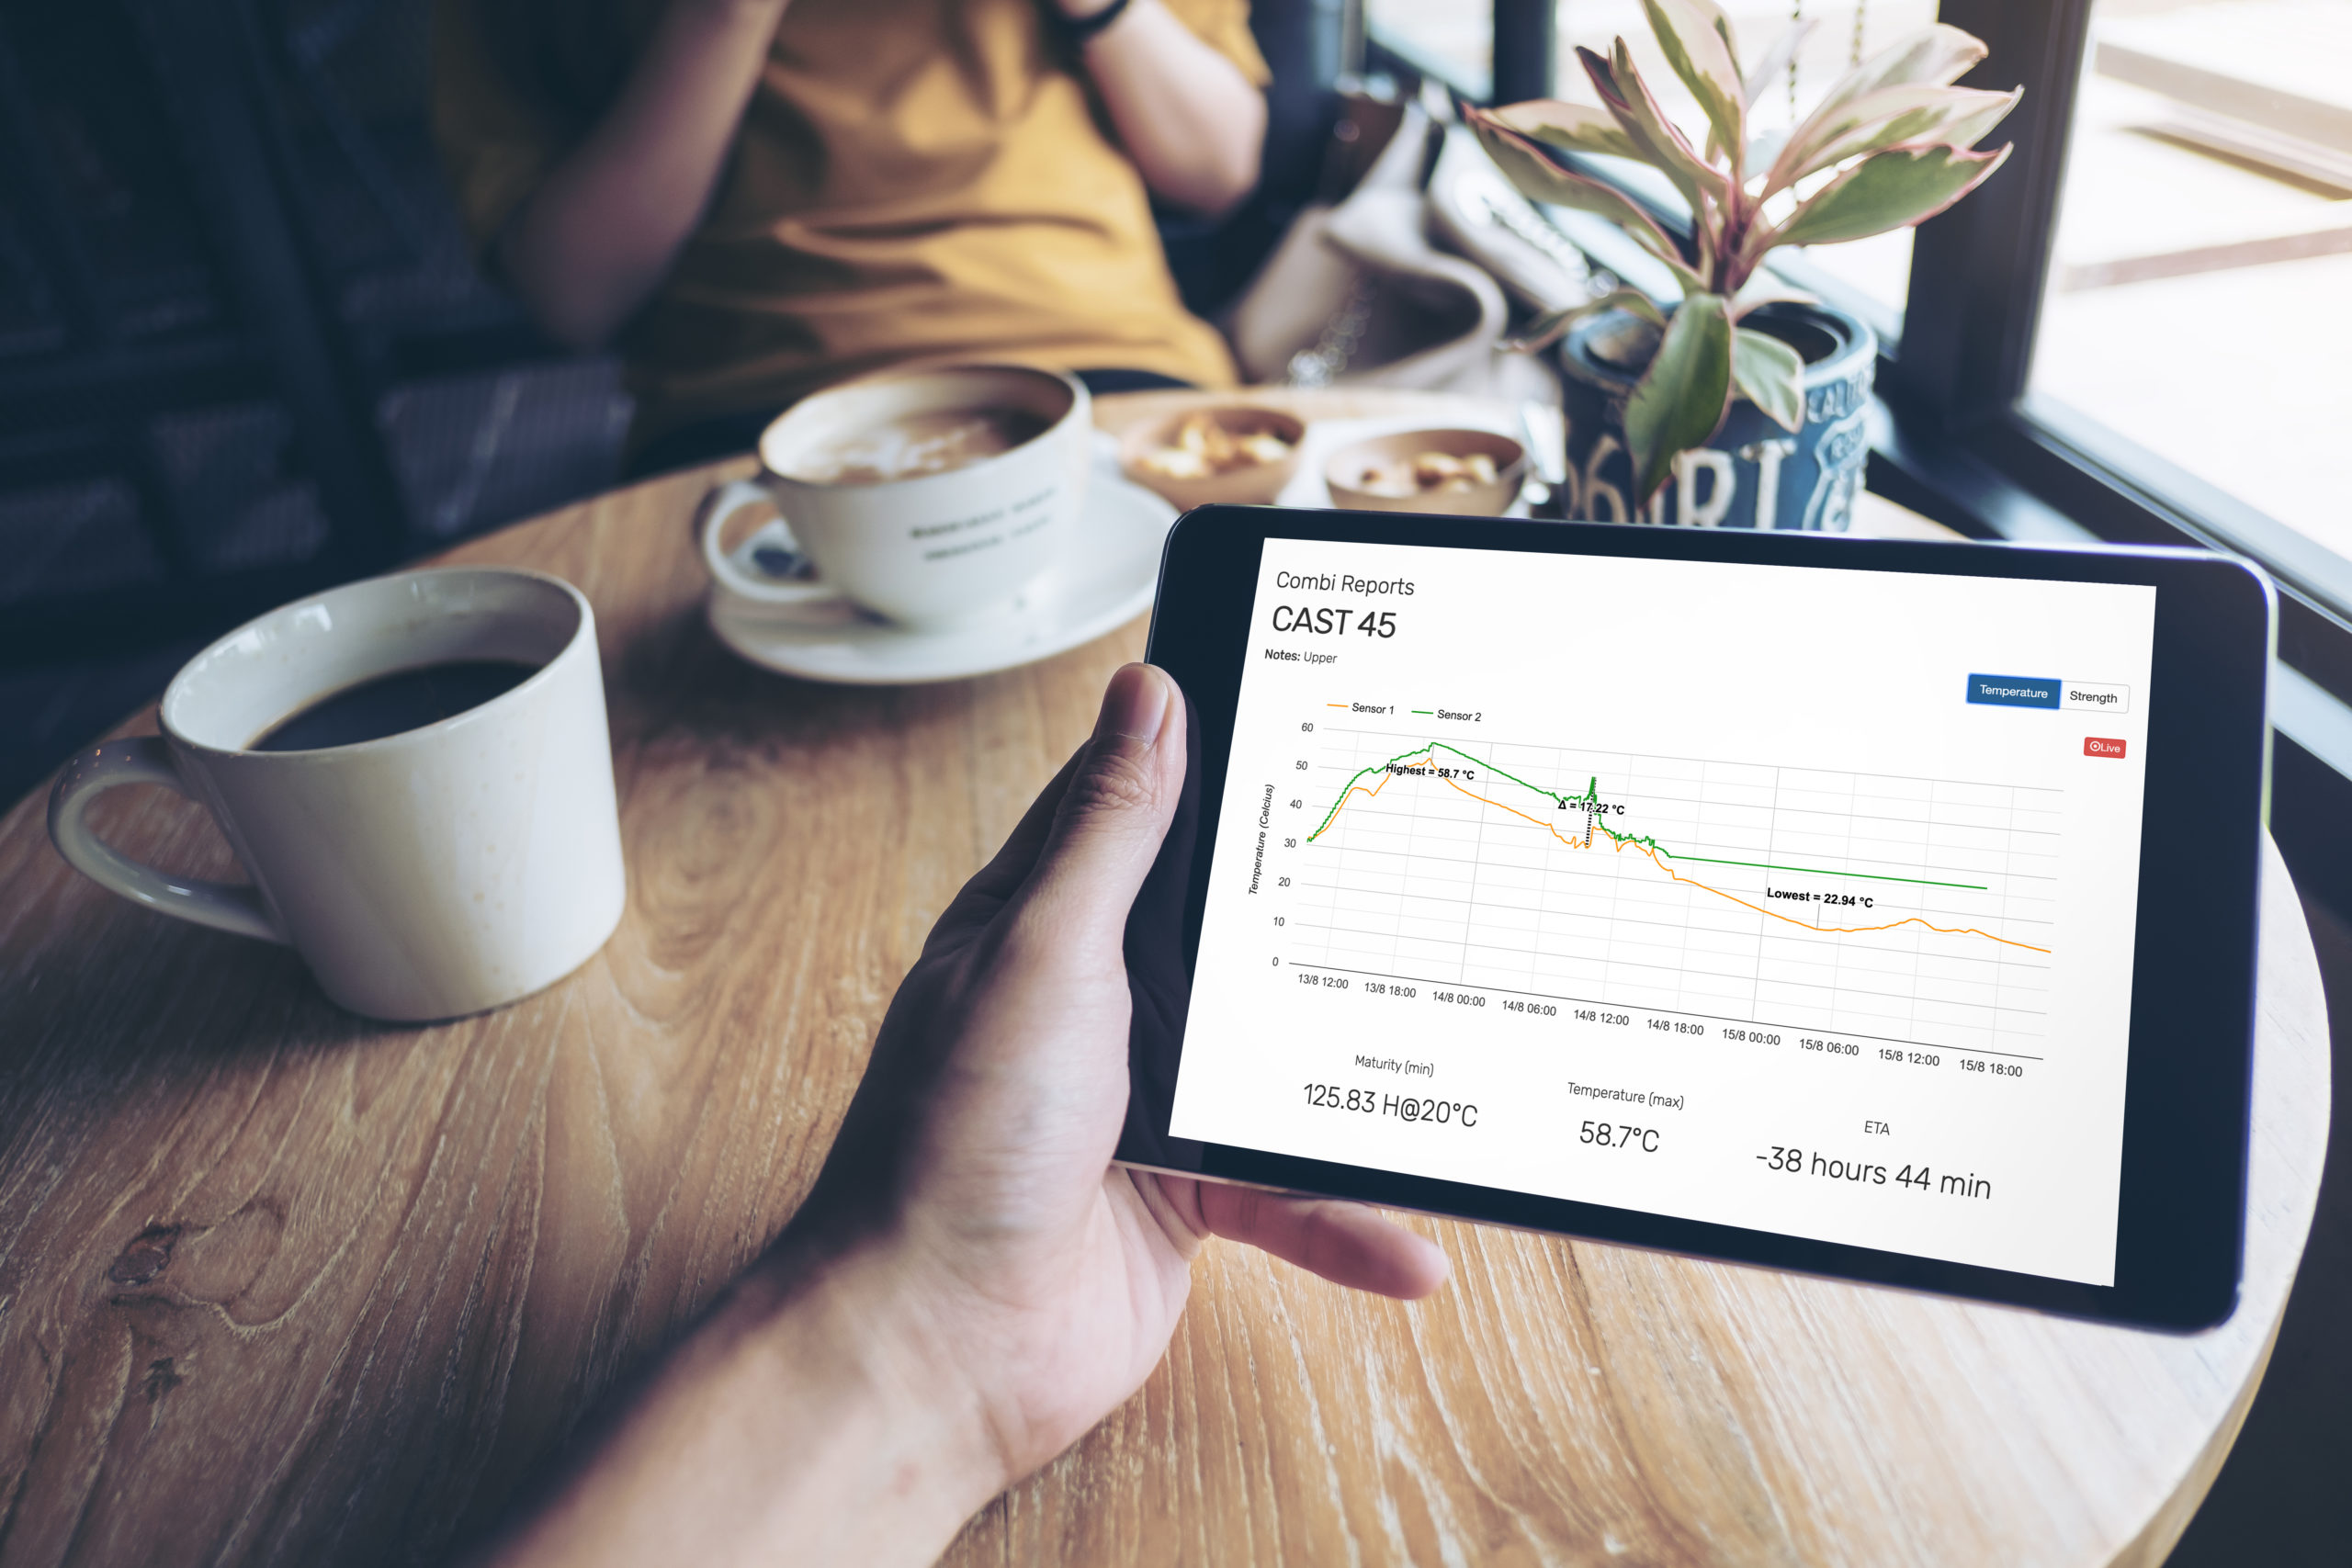 A coffee cup on a light-brown wooden table rests in the background as a builder holds a tablet in their left hand looking at sensor data in the foreground.